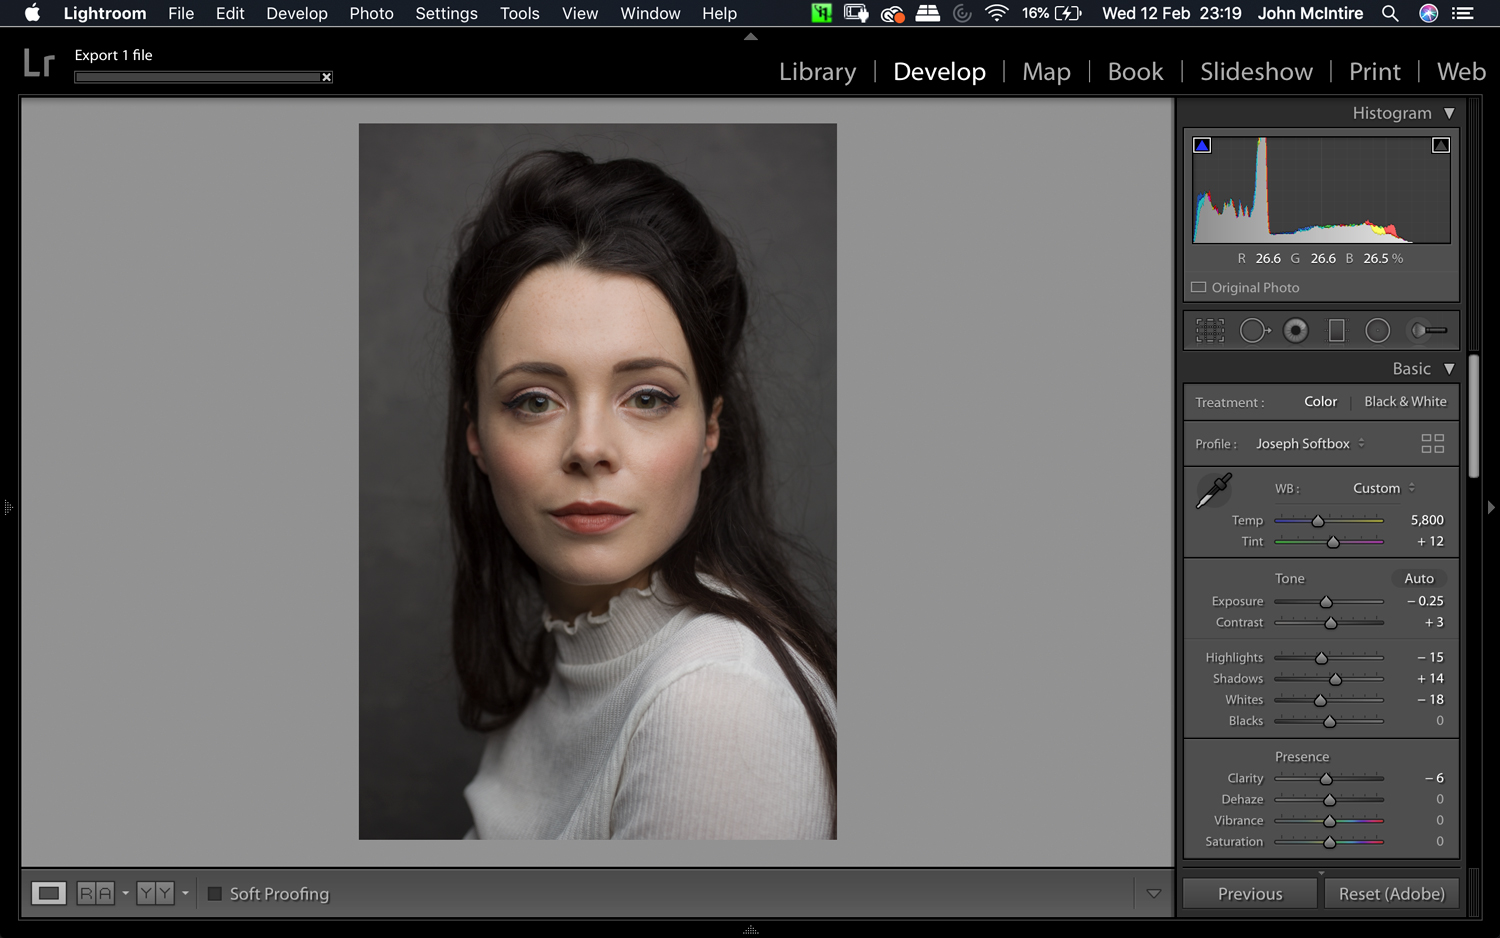 How to Use the Photoshop Camera Raw Filter for Better Photo Editing